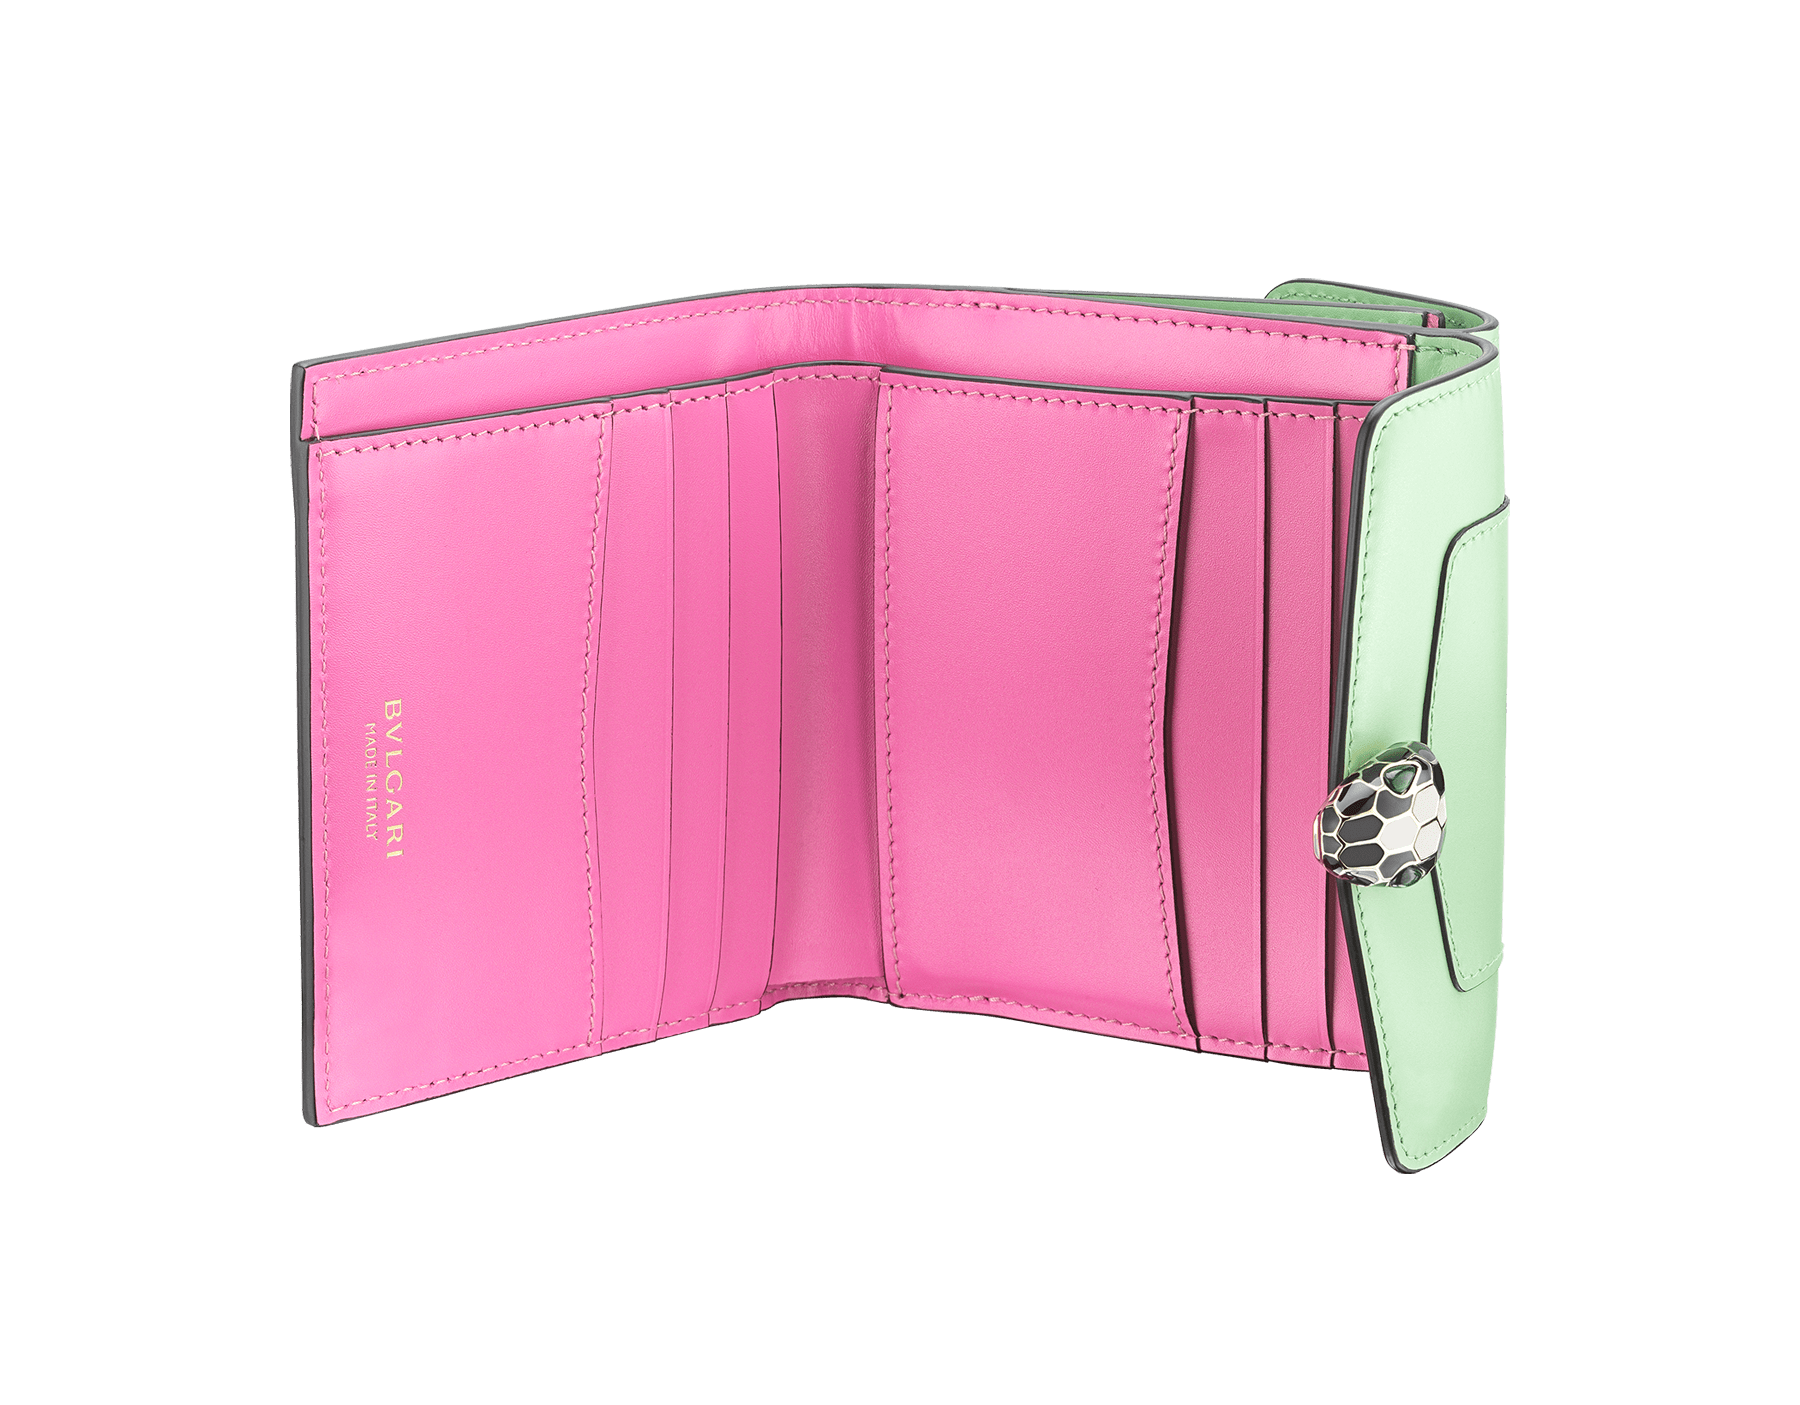 """Serpenti Forever"" square compact wallet in mint and taffy quartz calf leather. Iconic snakehead stud closure in black and white agate enamel, with green malachite eyes. SEA-WLT-COMPACT-3Fc image 2"